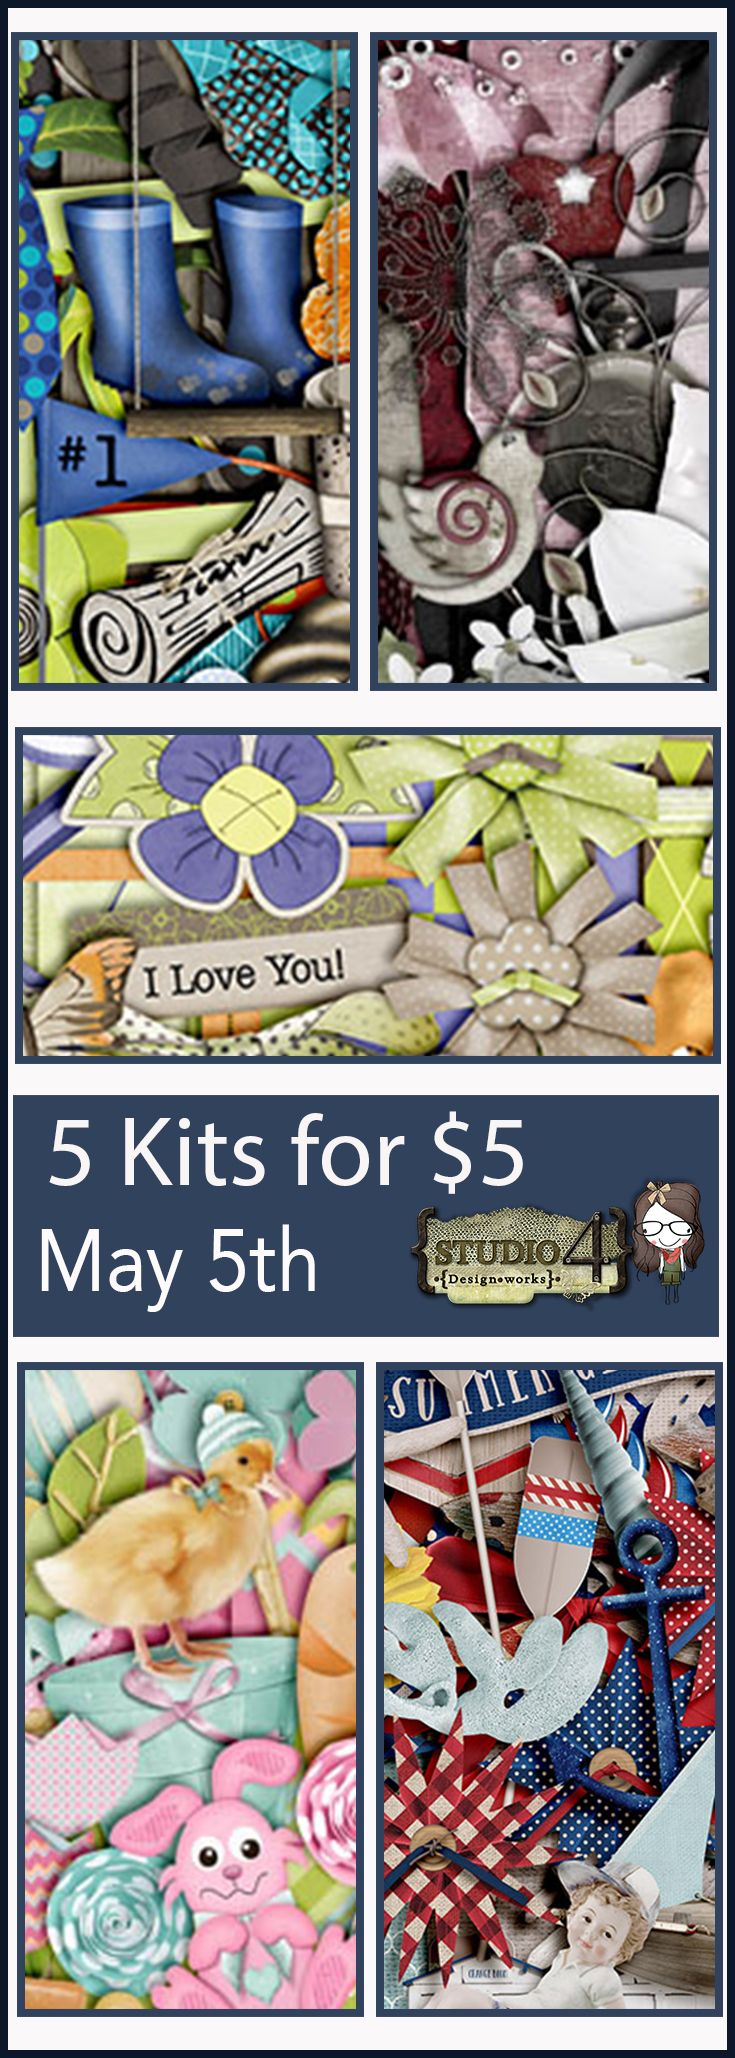 5 Kits for $5 today only in celebration of NSD. Fun scrapbooking kits at a fantastic price by Studio4 Designworks